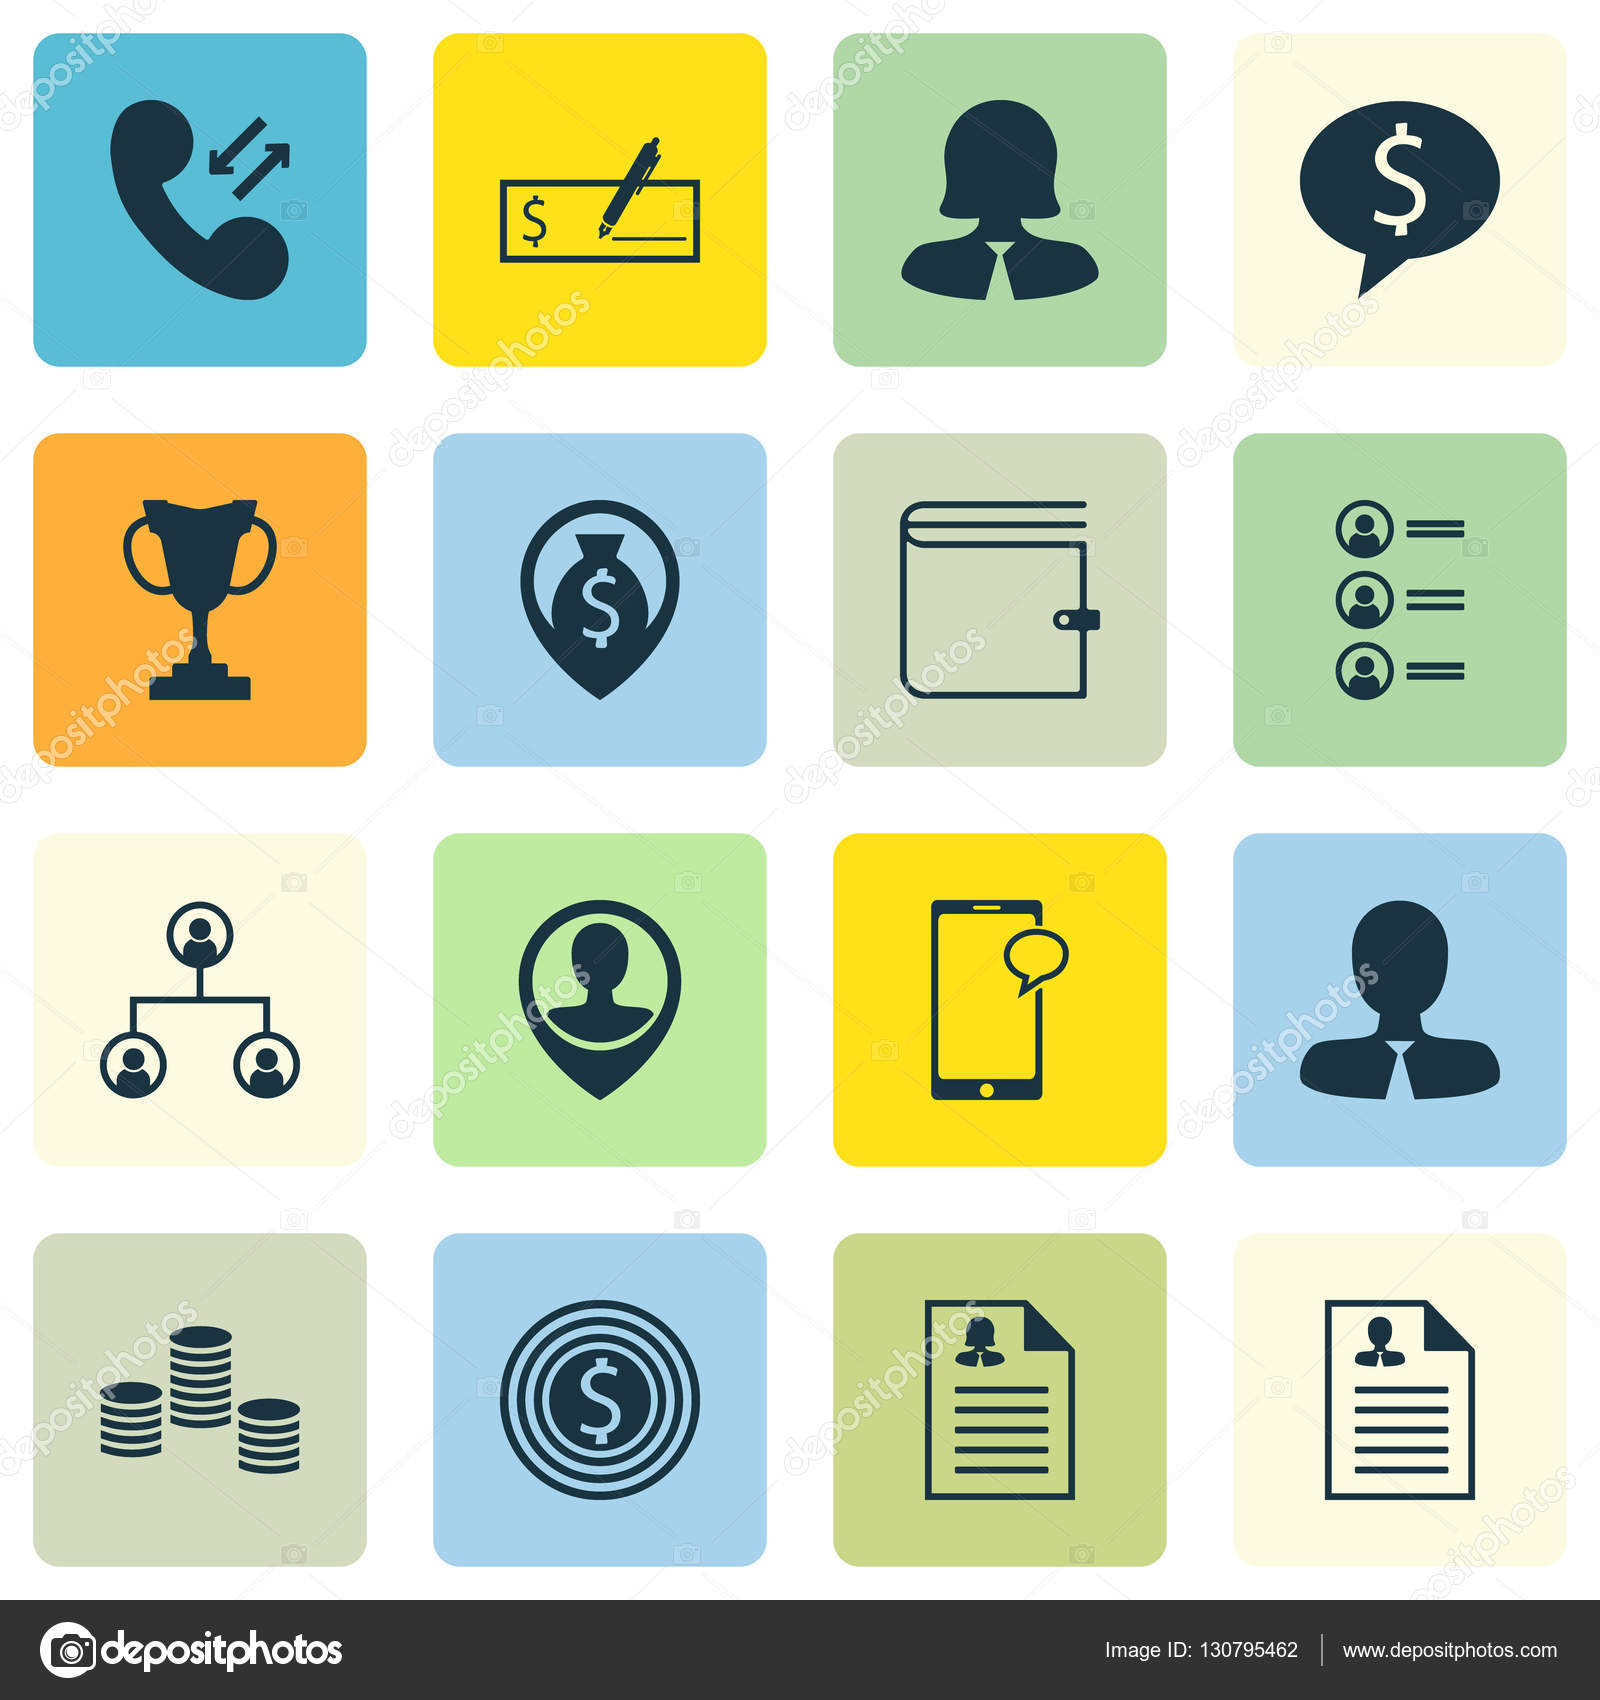 Set of hr icons on money money navigation and manager topics set of hr icons on money money navigation and manager topics editable vector illustration includes call cellular resume and more vector icons thecheapjerseys Images